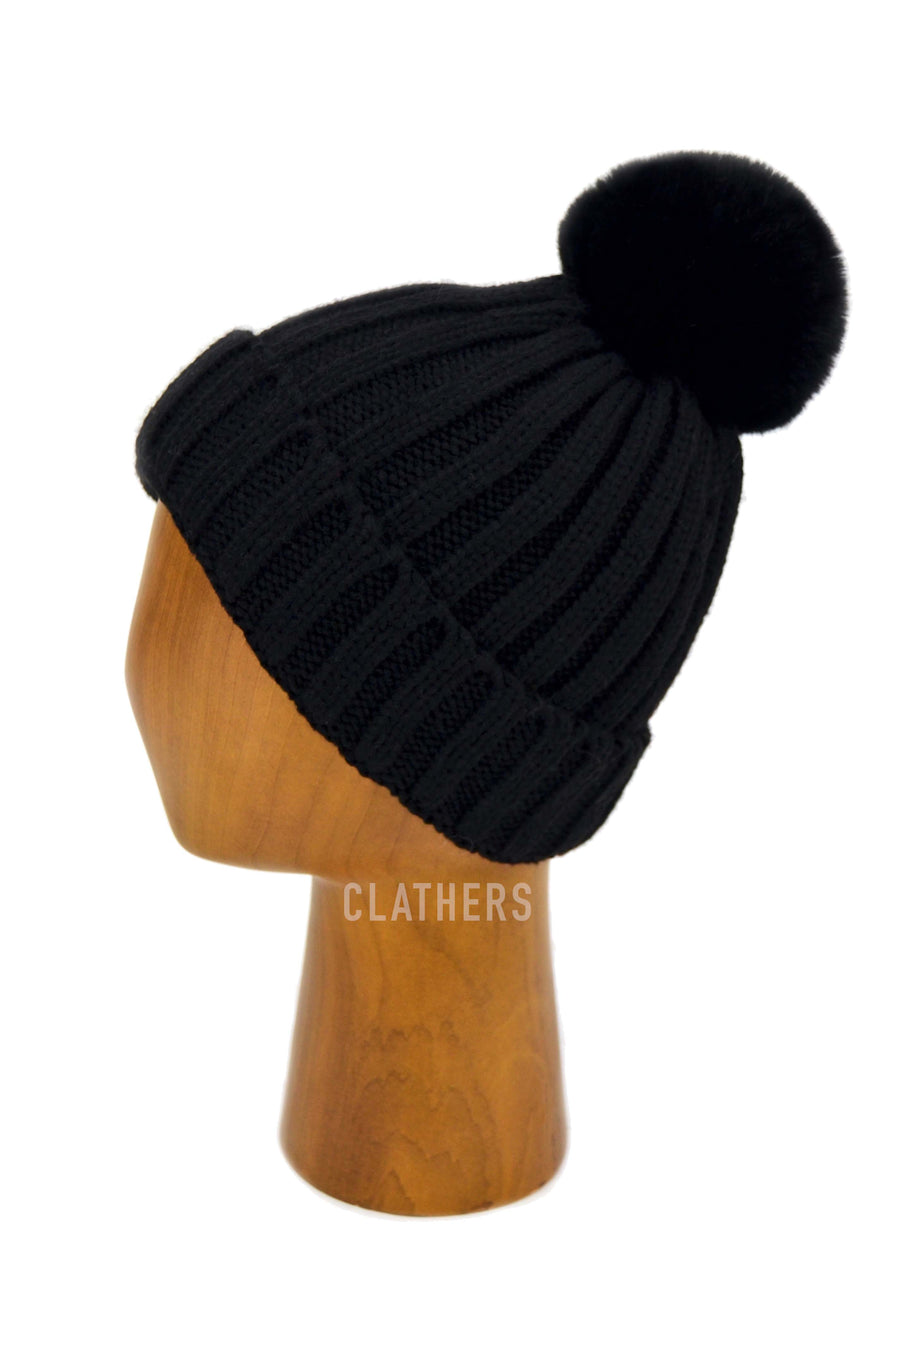 Ladies Black Winter Knitted Beanie Detachable Faux Fur Bobble Pom Pom Hat